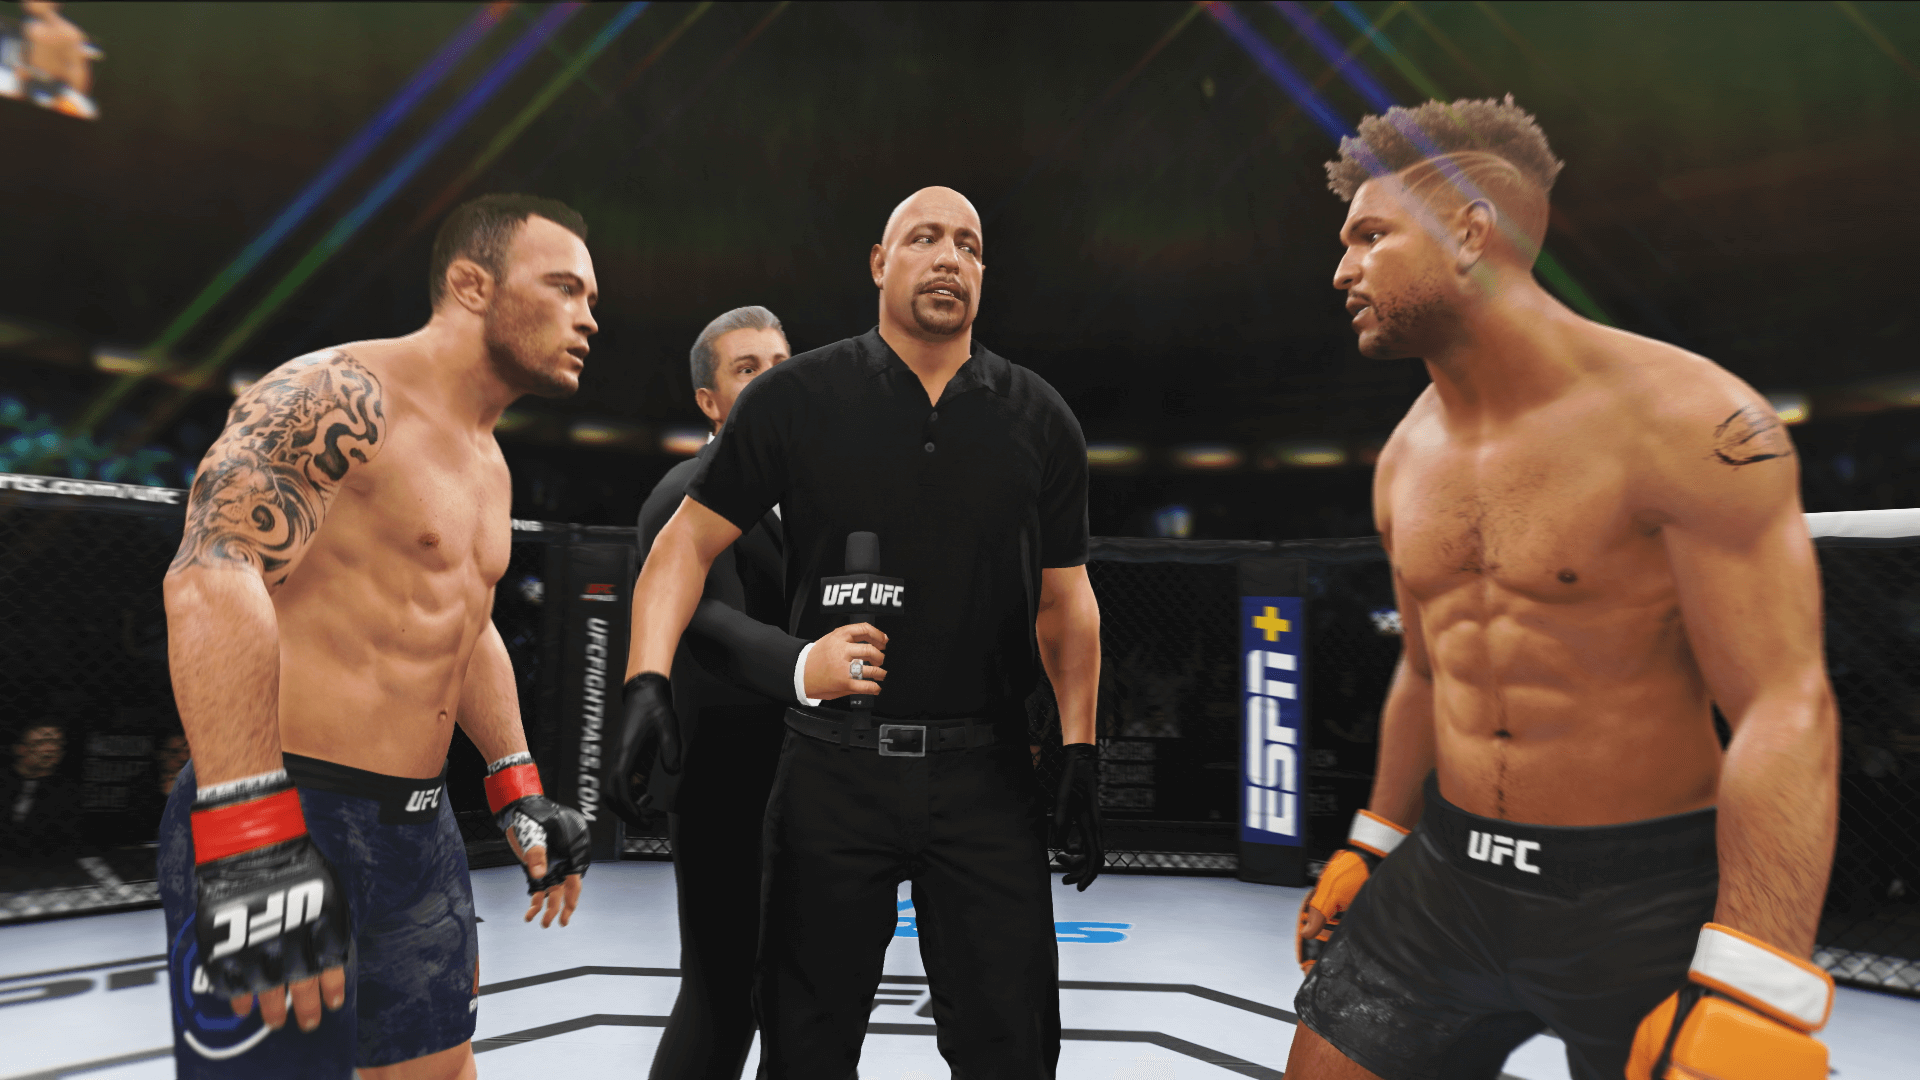 Ufc 4 Career Mode Mma Video Game Ea Official Site